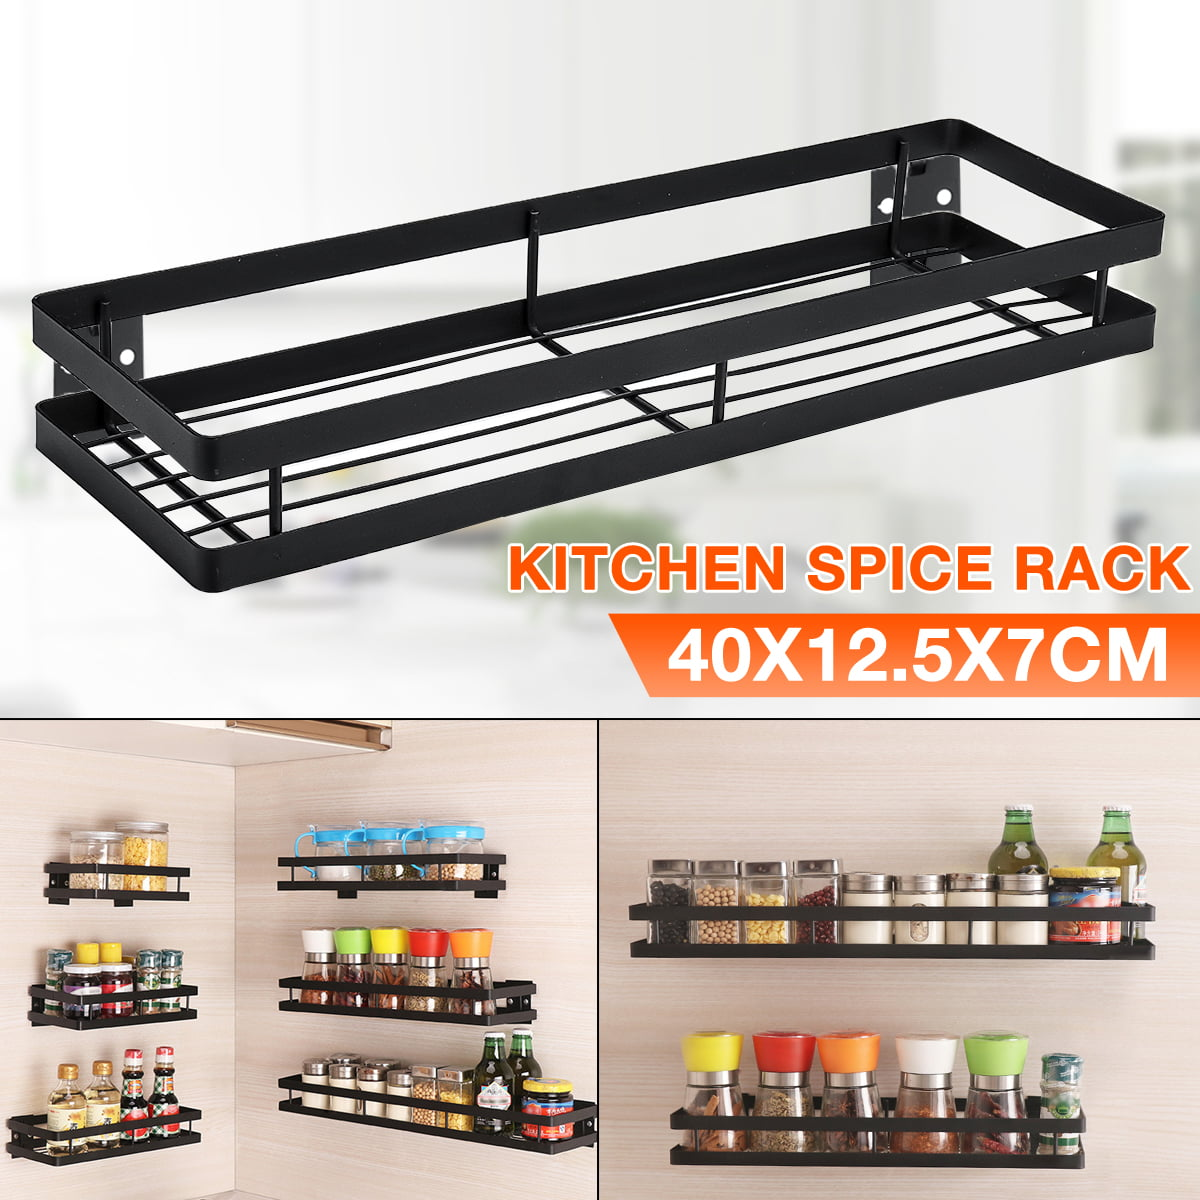 2 Pack Single Tier Wall Mounted Stainless Steel Spice Rack